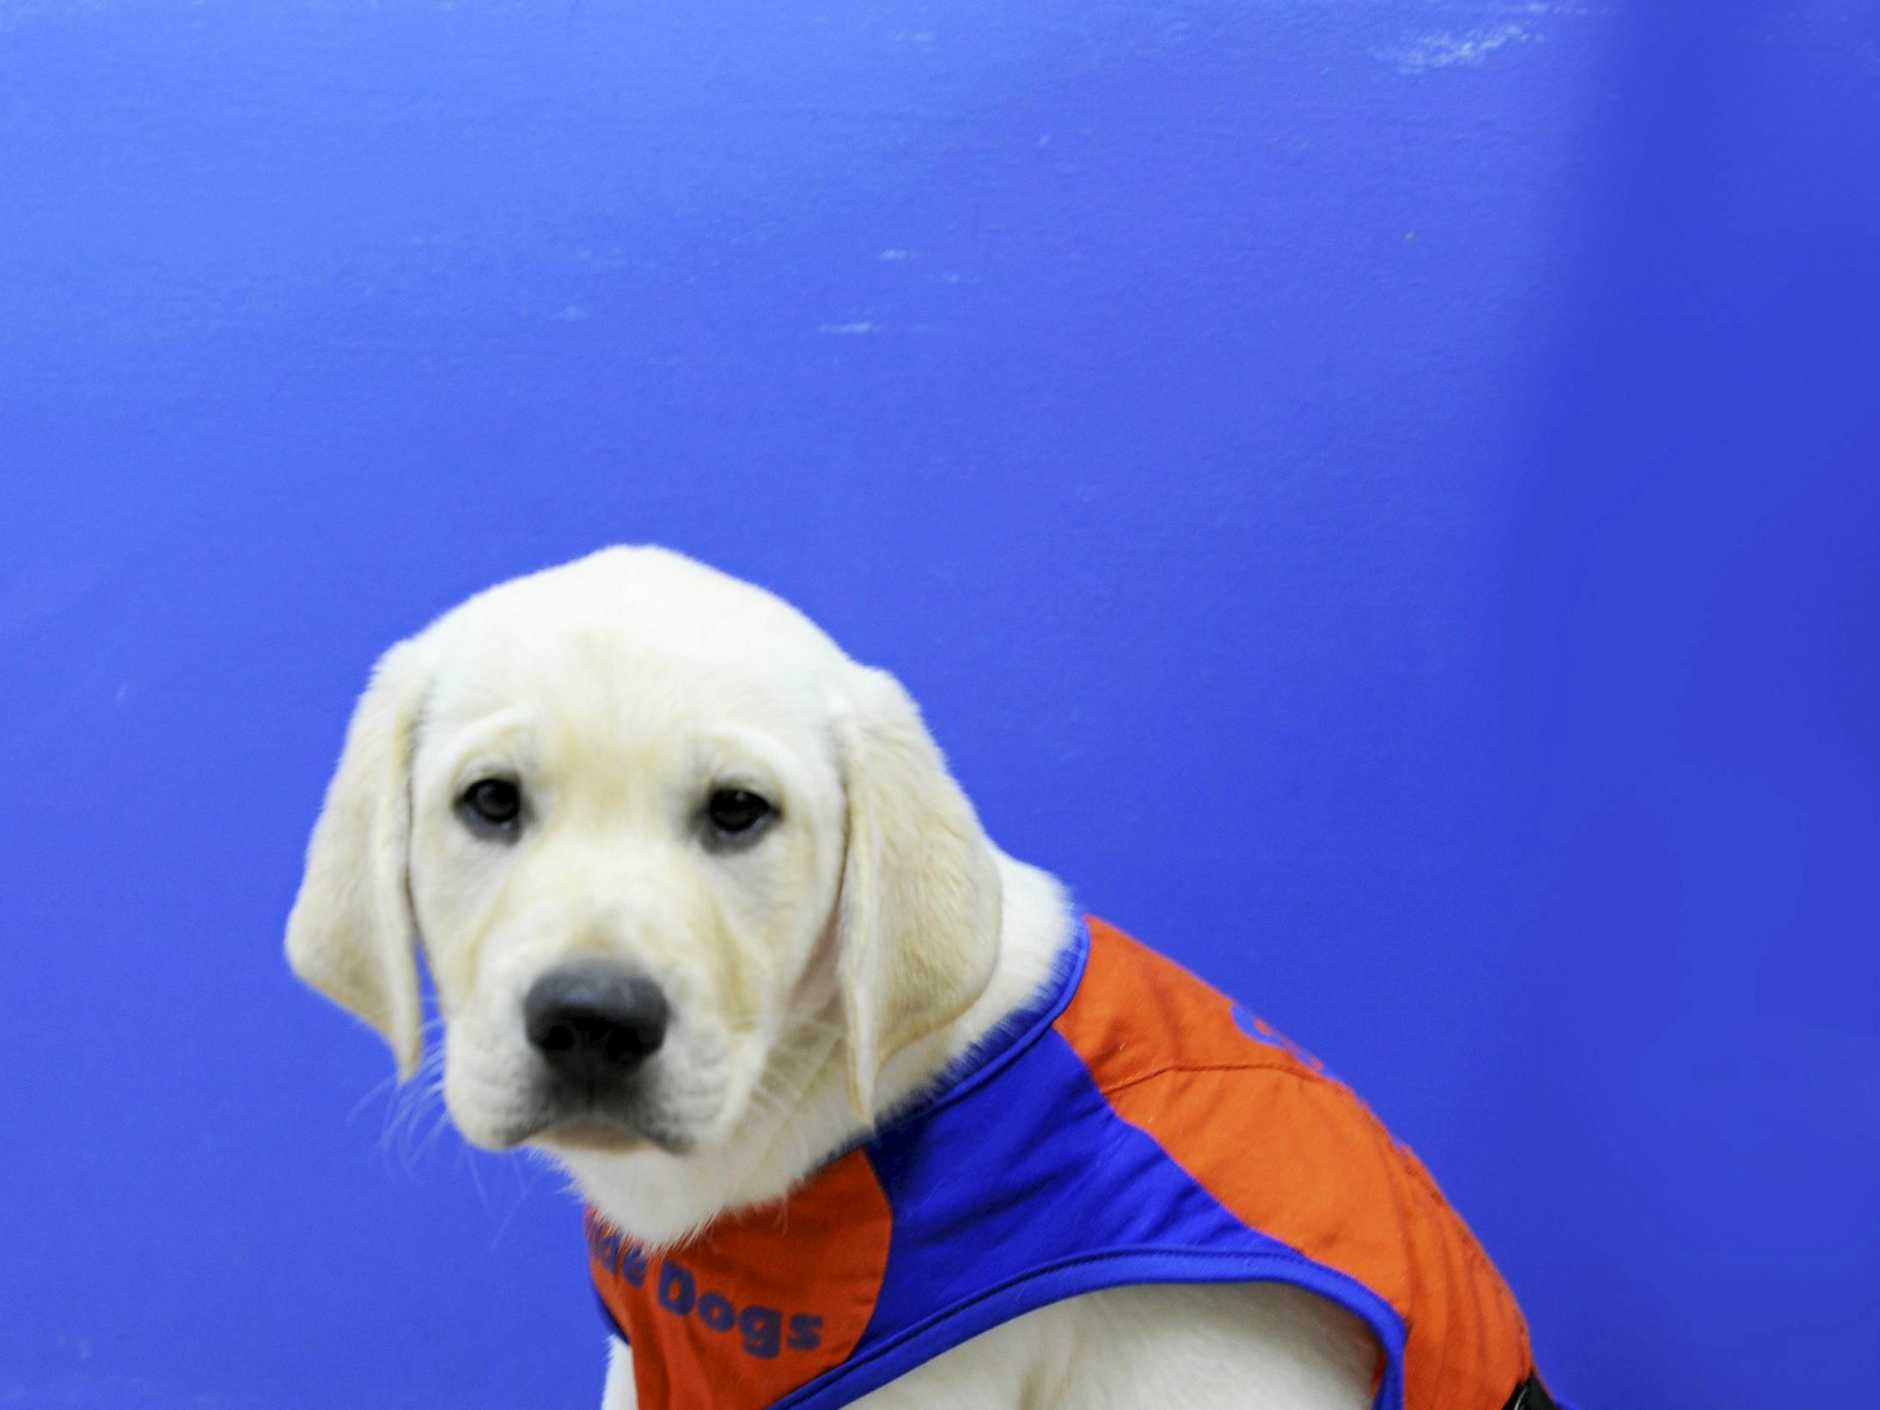 Trevor as a puppy. 'Trevor' is the new guide dog for Calliope's Dave Byars after previous guide dog 'Queeny' retired.